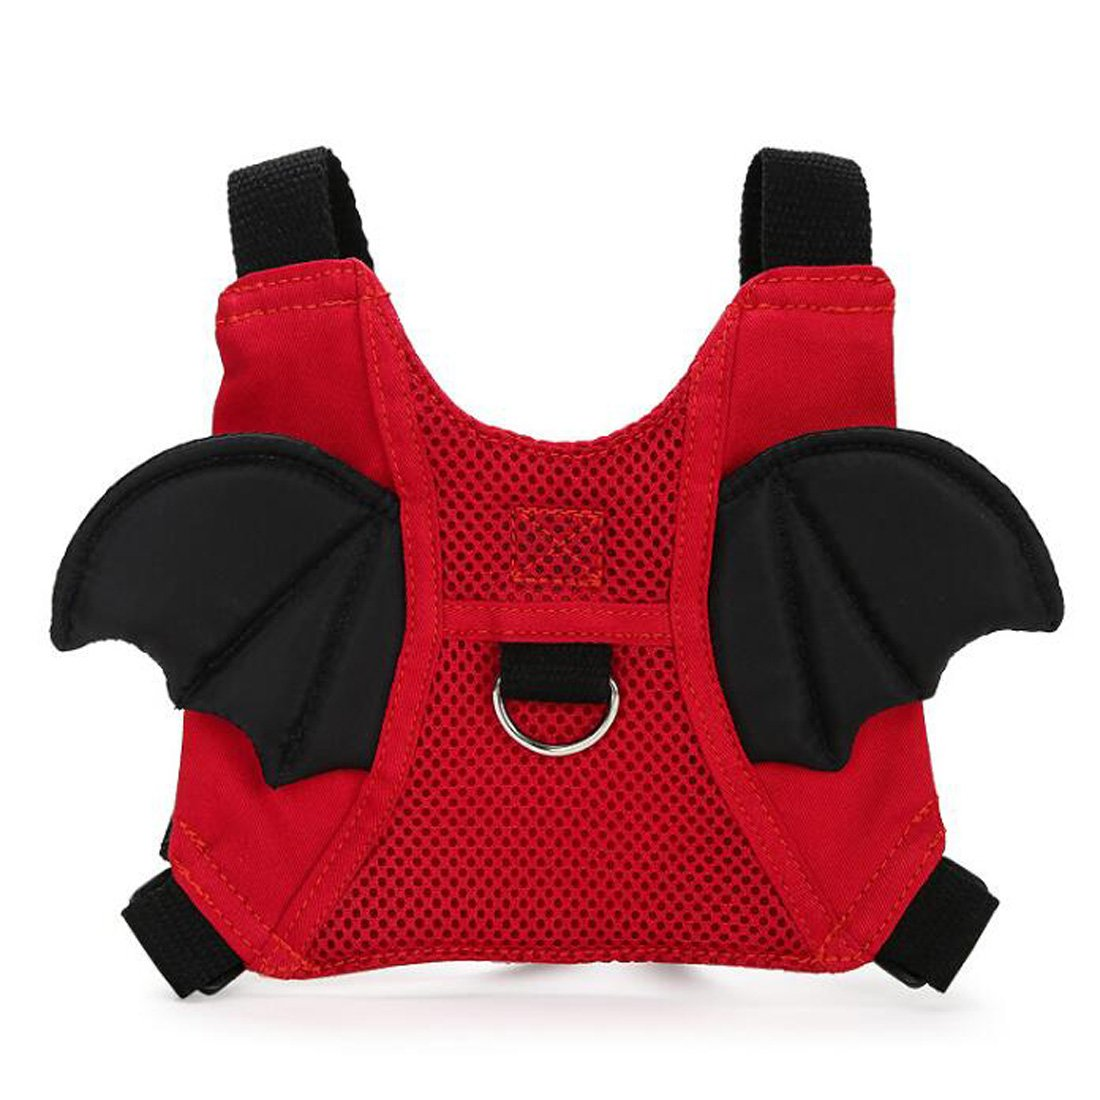 EPLAZA Toddler Walking Safety Bat Belt Harness with Leash Breathable (cotton red) by EPLAZA (Image #1)